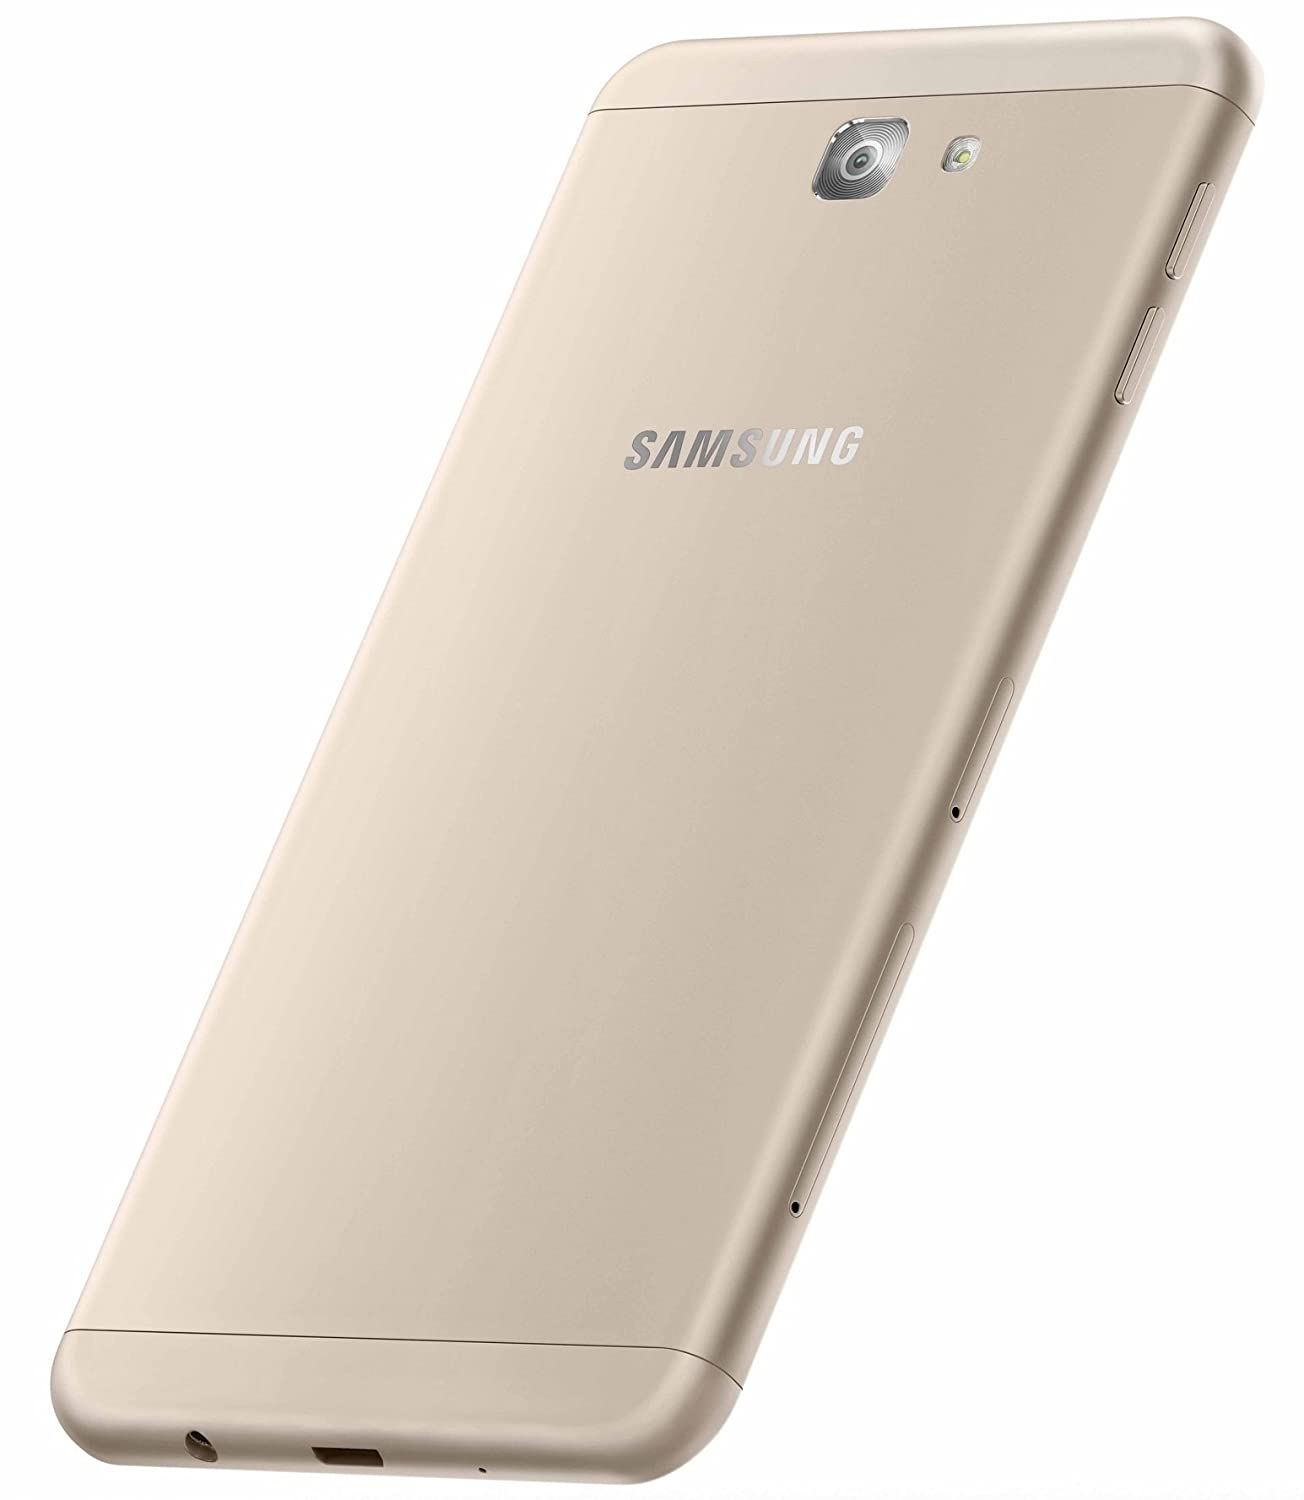 Samsung Galaxy On7 Prime Gold 4gb Ram 64gb Memory The Famous Store Next